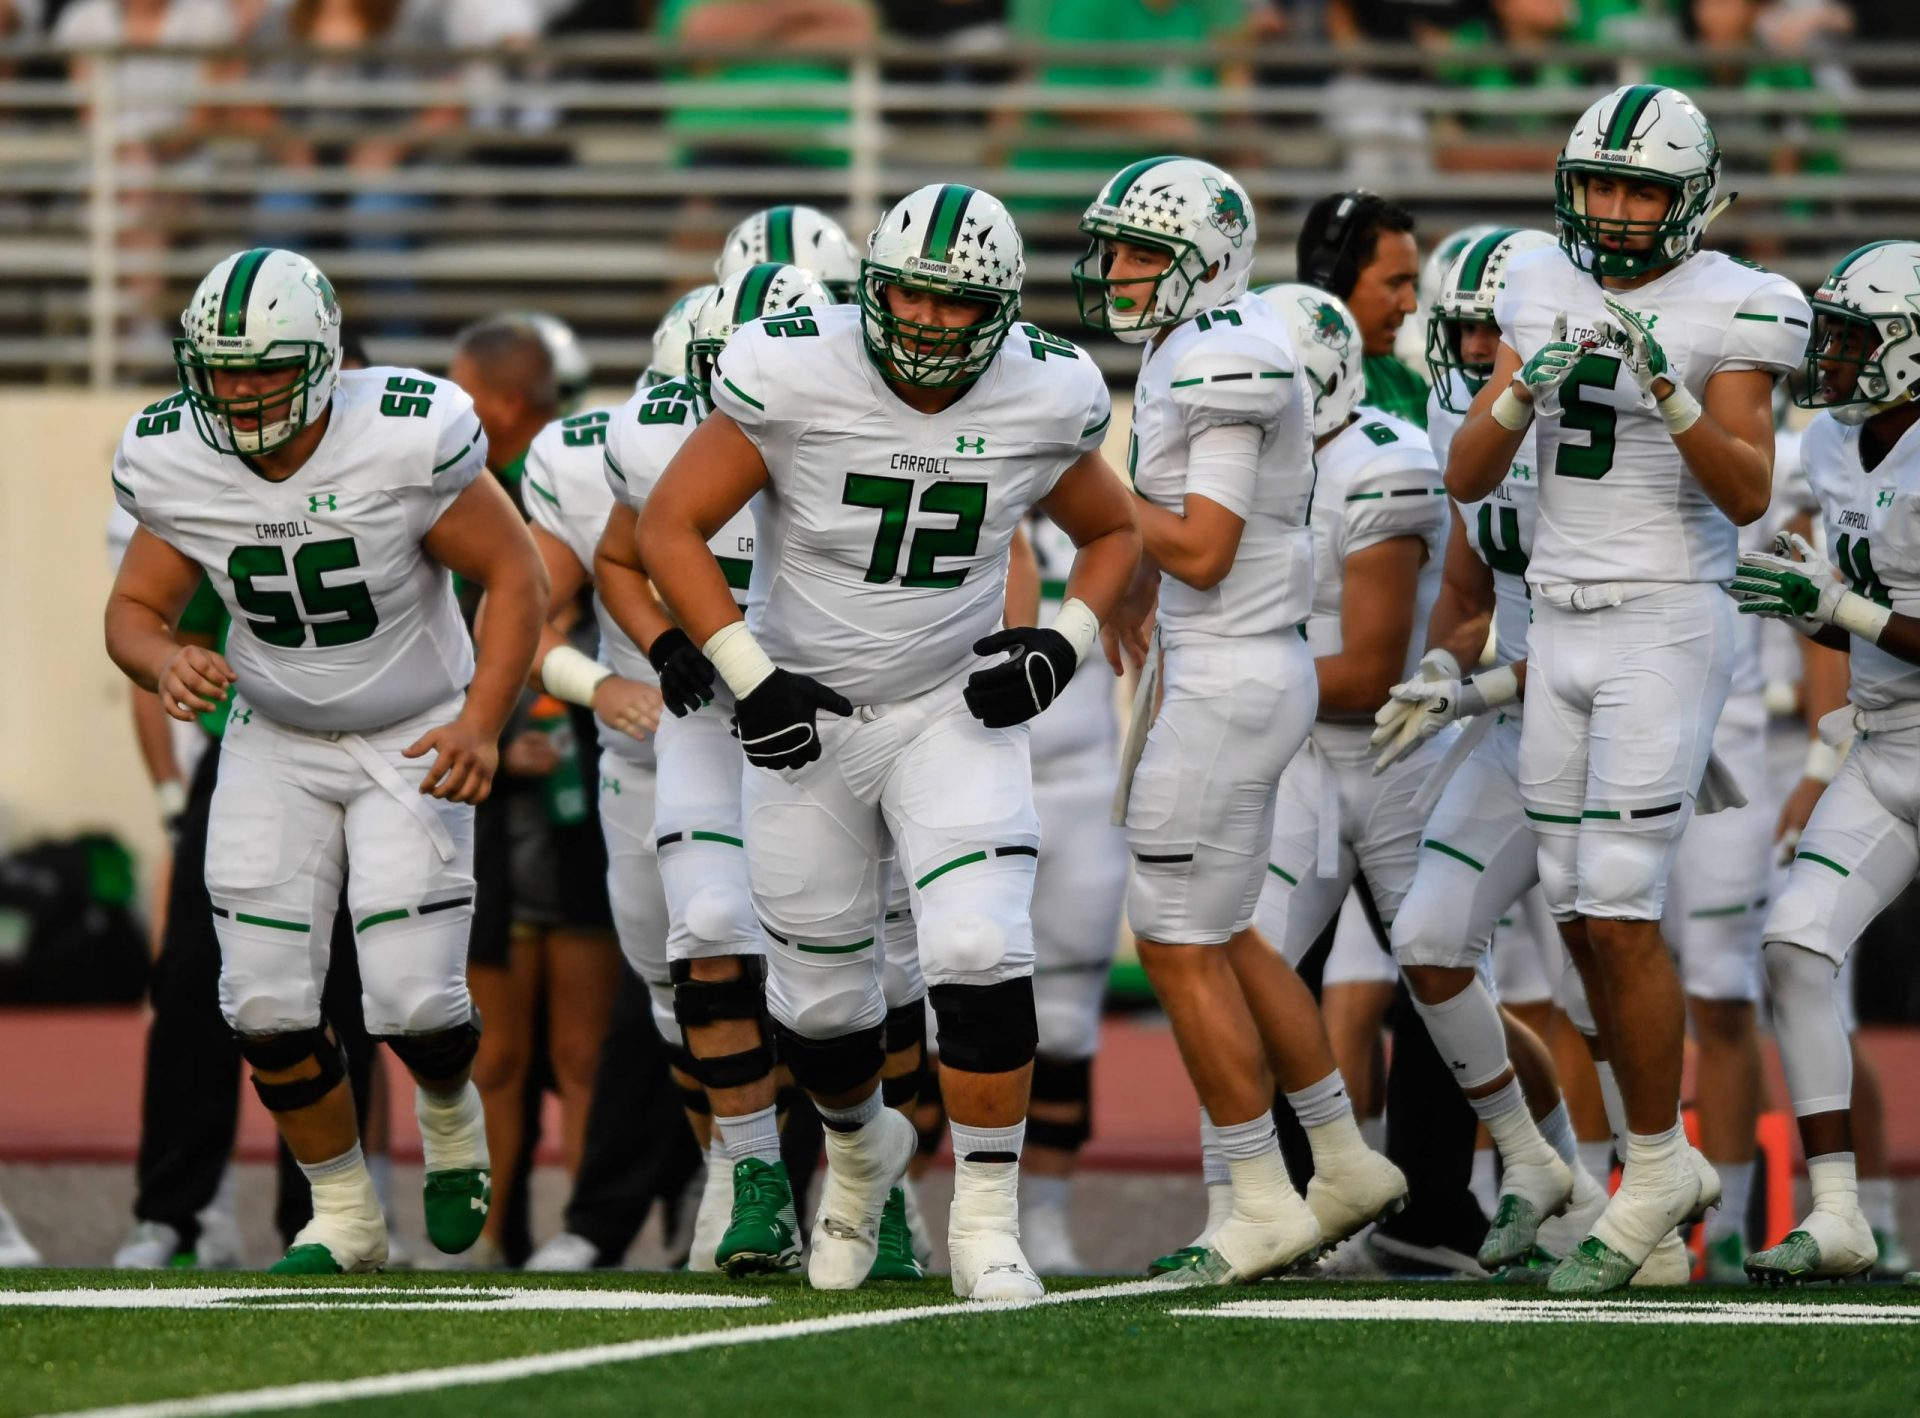 Southlake Carroll Head Coach Hal Wasson Placed on Administrative Leave